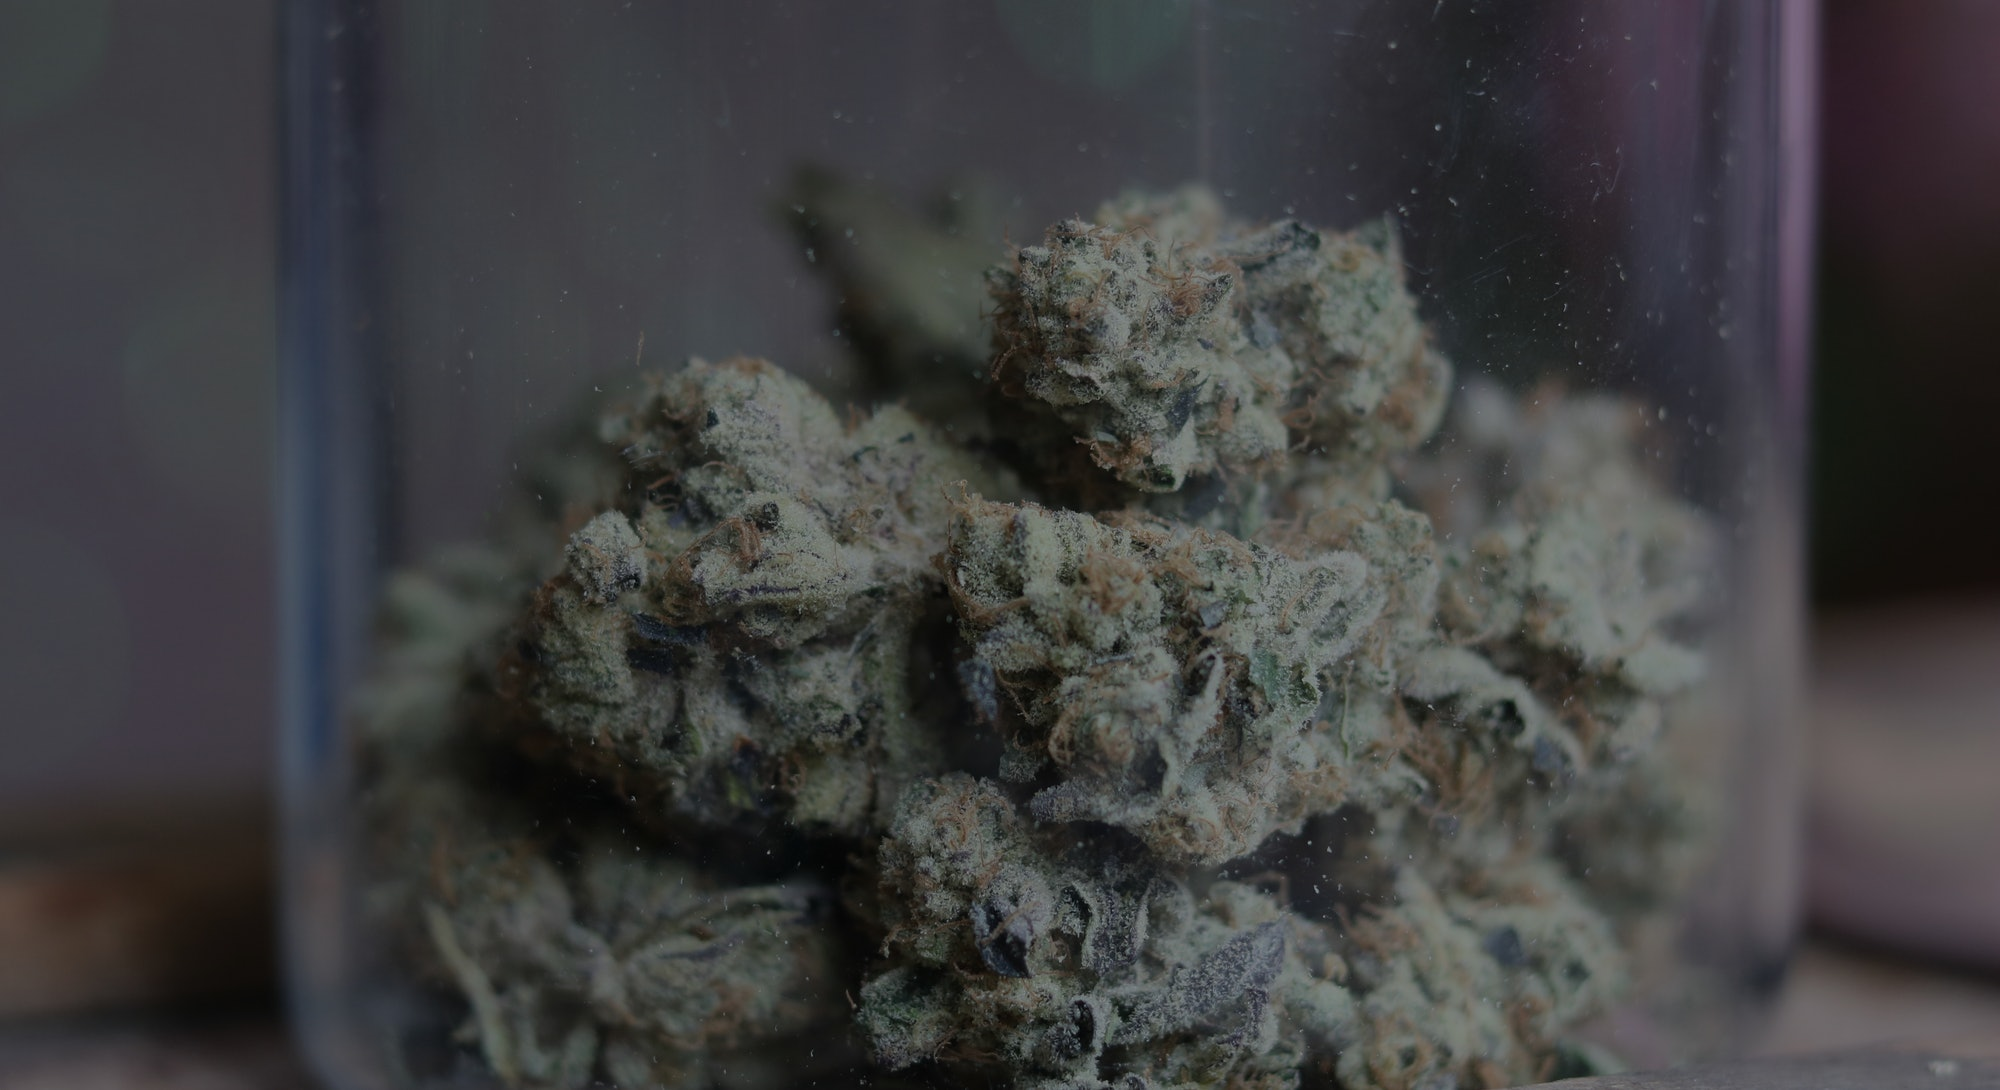 A up close photograph of an isolated glass jar of cannabis with a blurred background. Crystal trichomes on nugs.